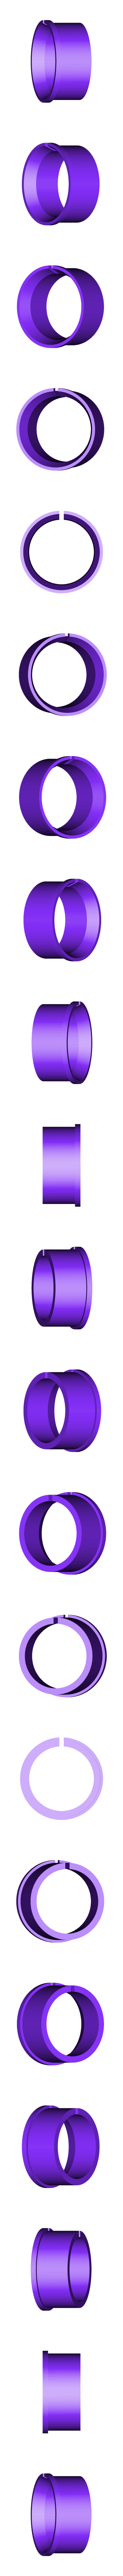 ring-adapter.STL Download free STL file Ring adapter for a drilling stand under Hilda • 3D print model, perinski